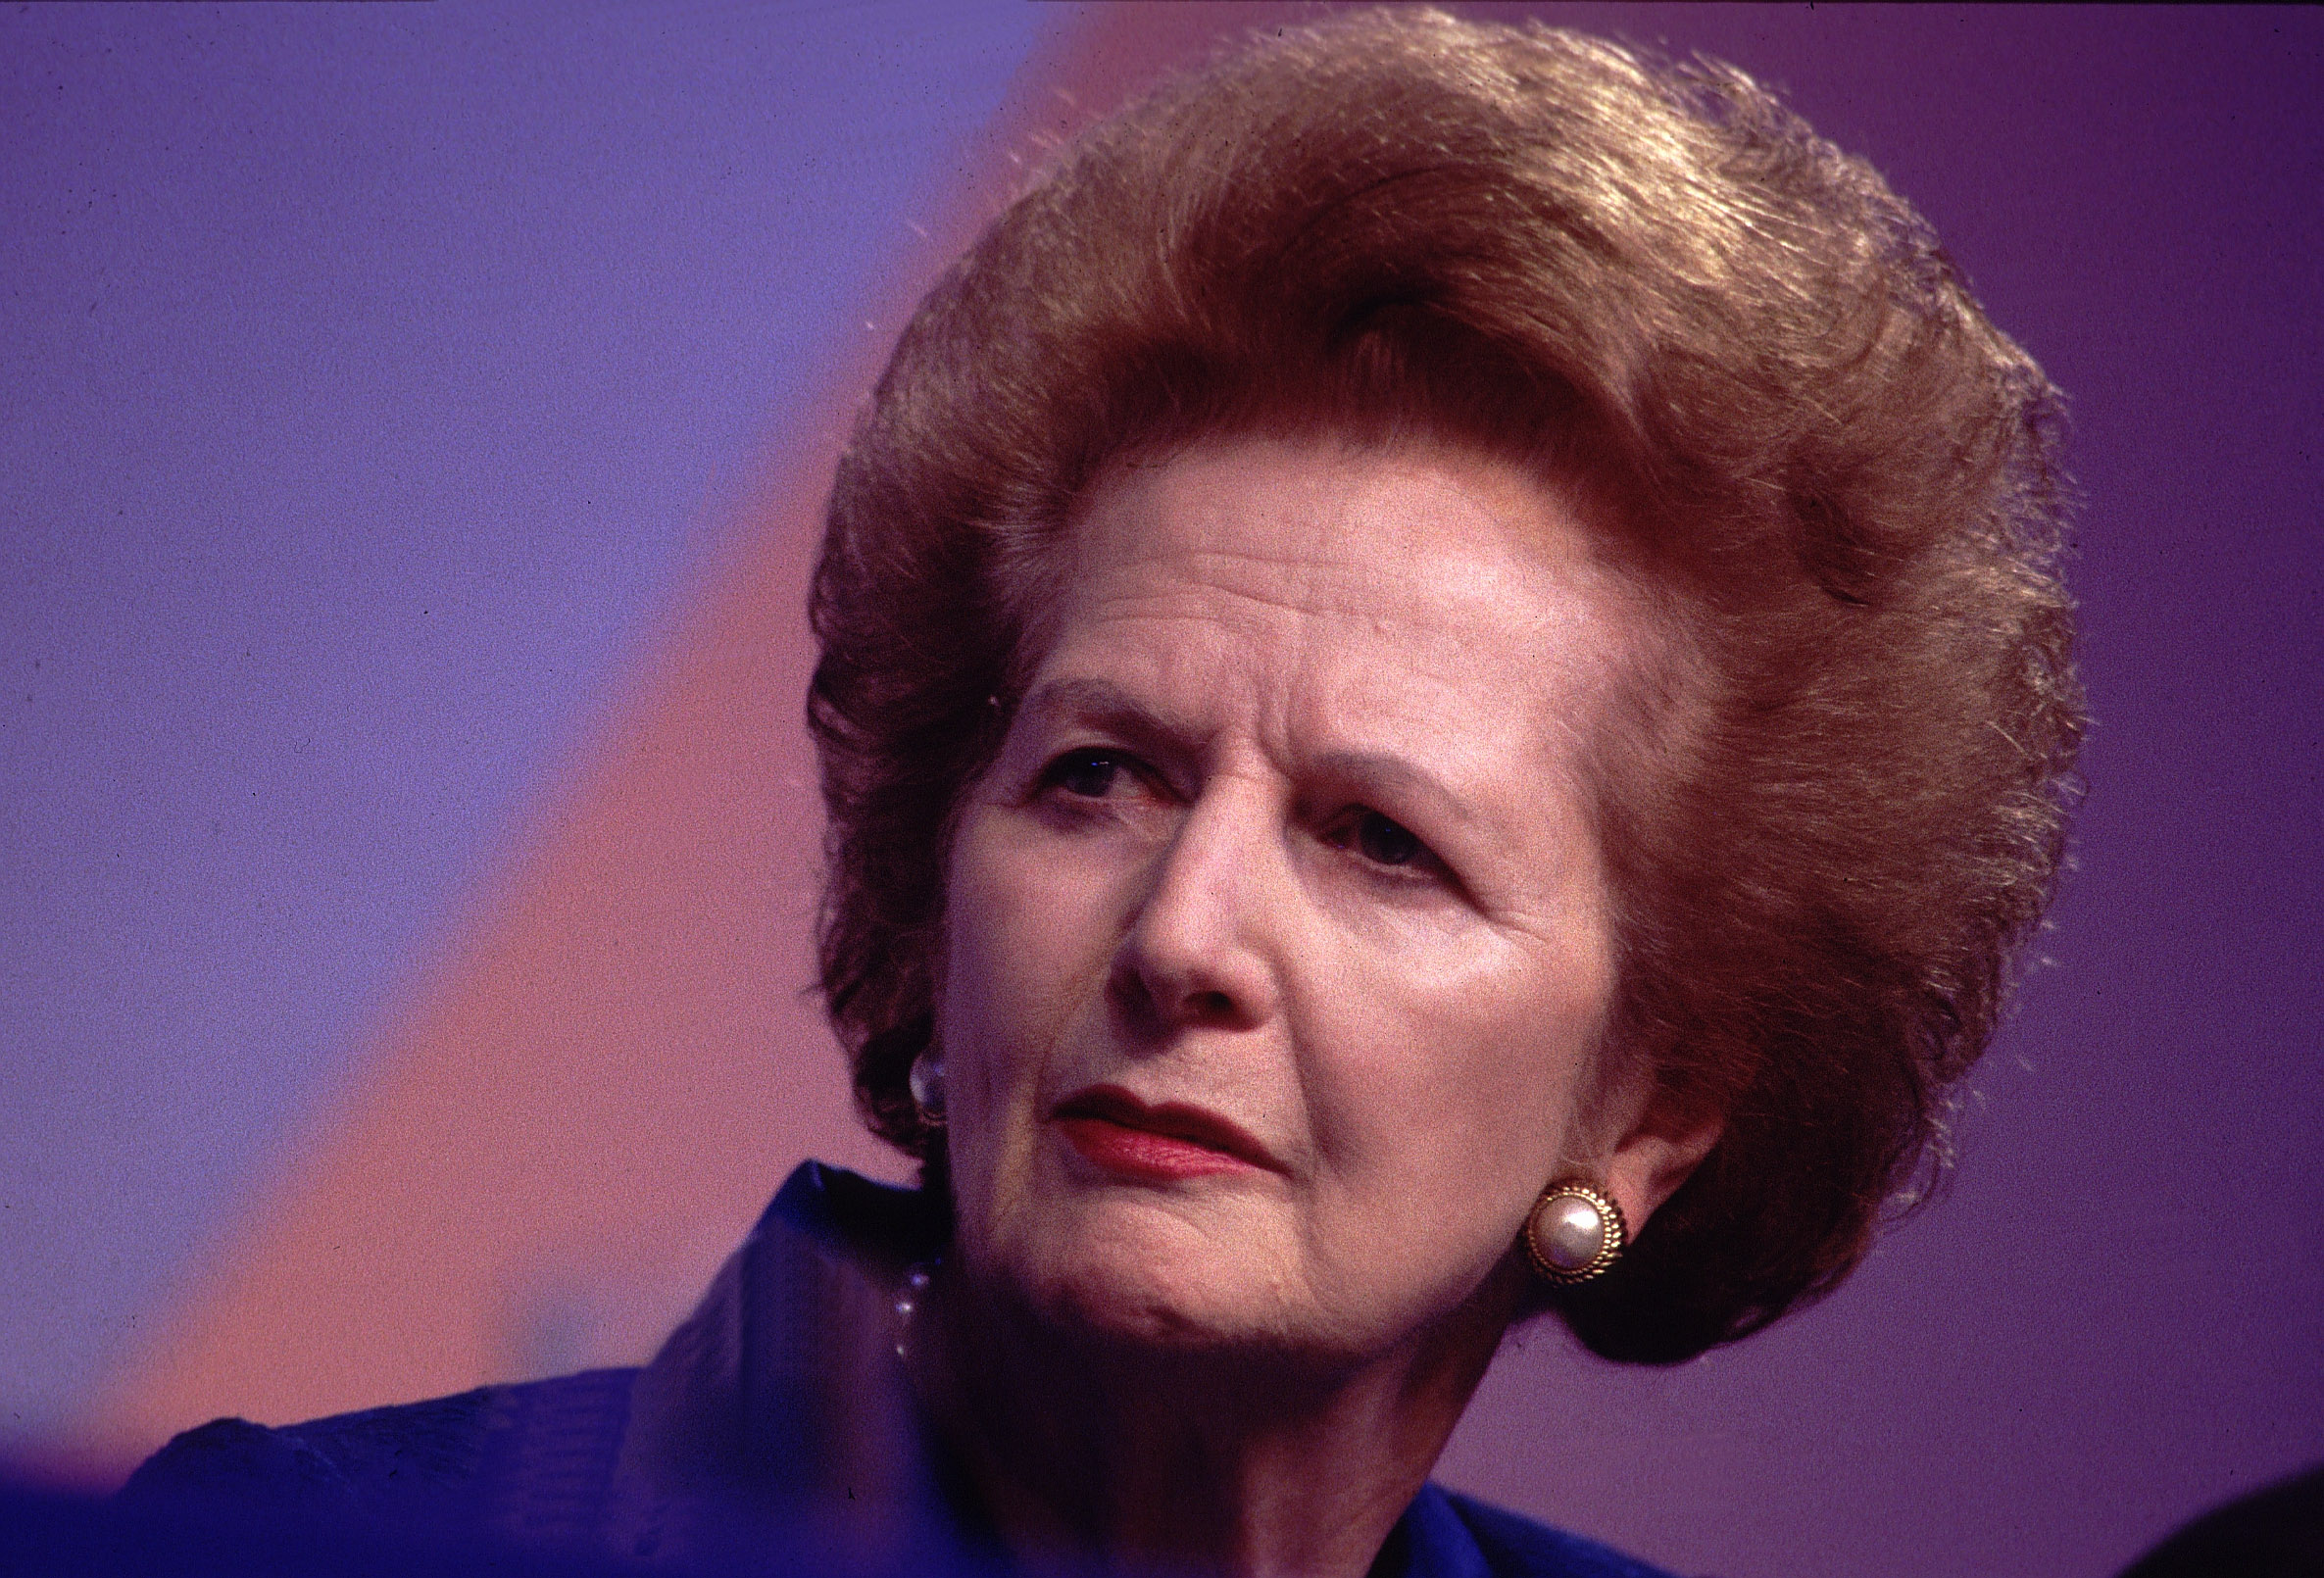 Margaret Thatcher named most influential woman of last 70 years